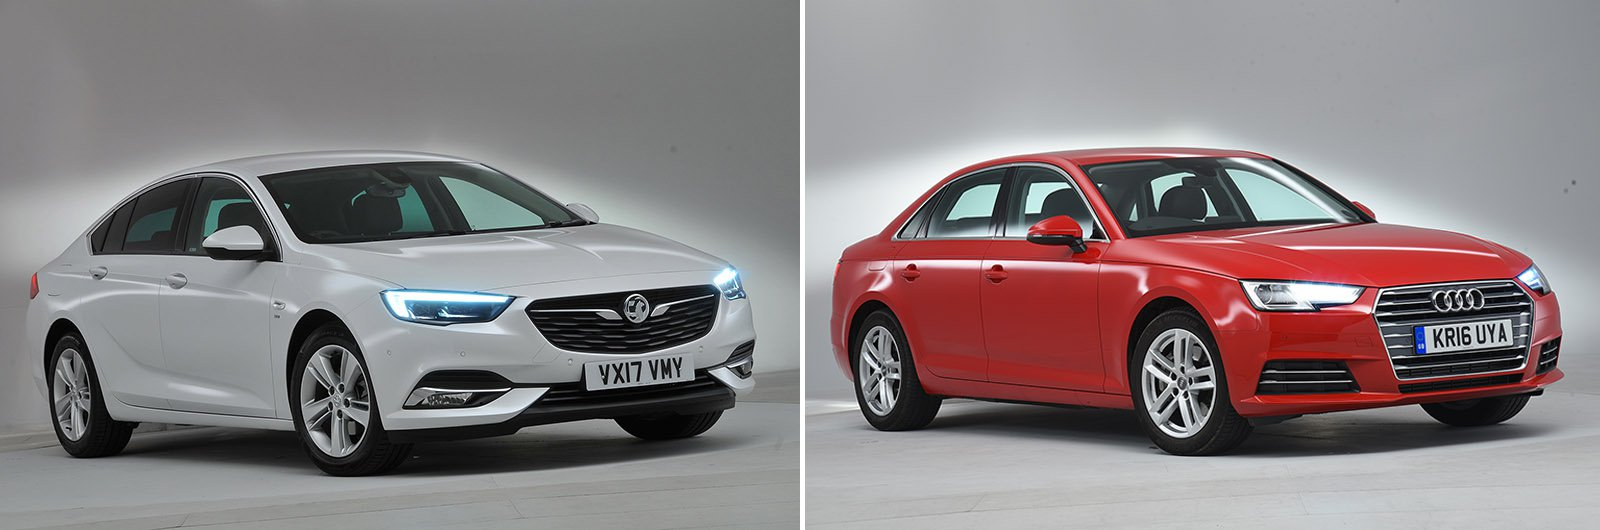 New Vauxhall Insignia Grand Sport vs used Audi A4: which is